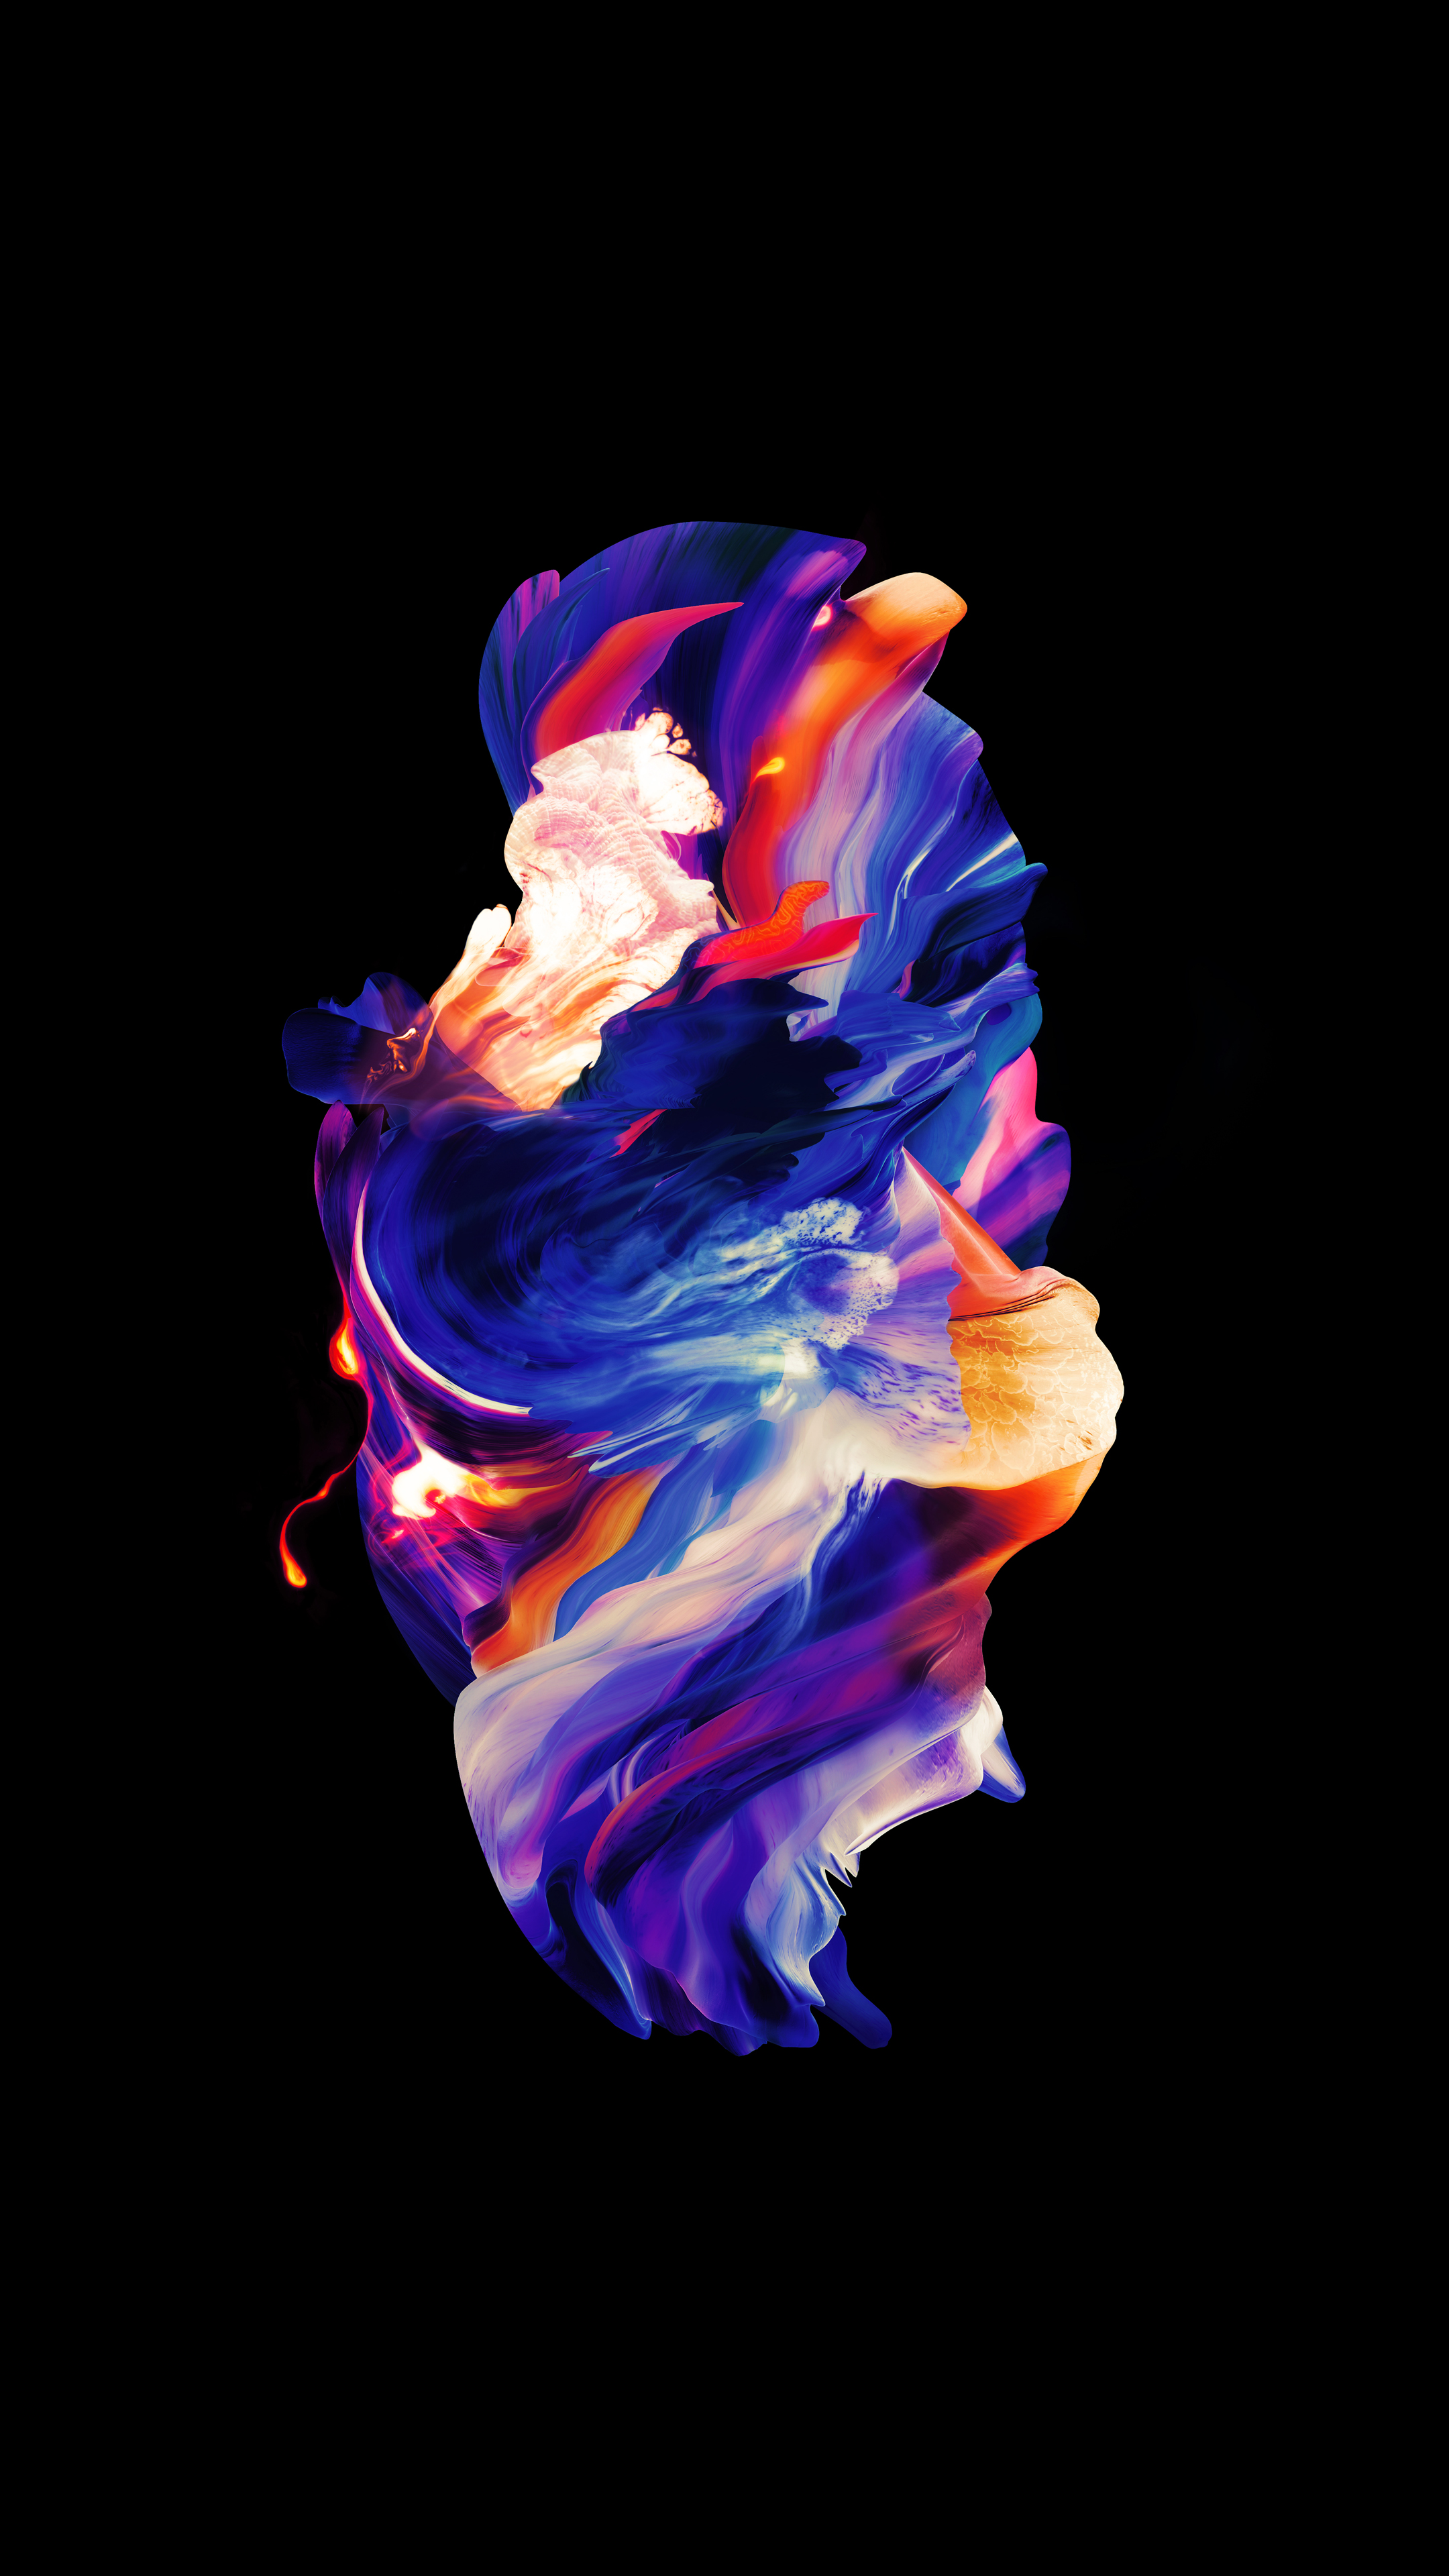 Iphone X Which Wallpaper For Iphone X Macrumors Forums